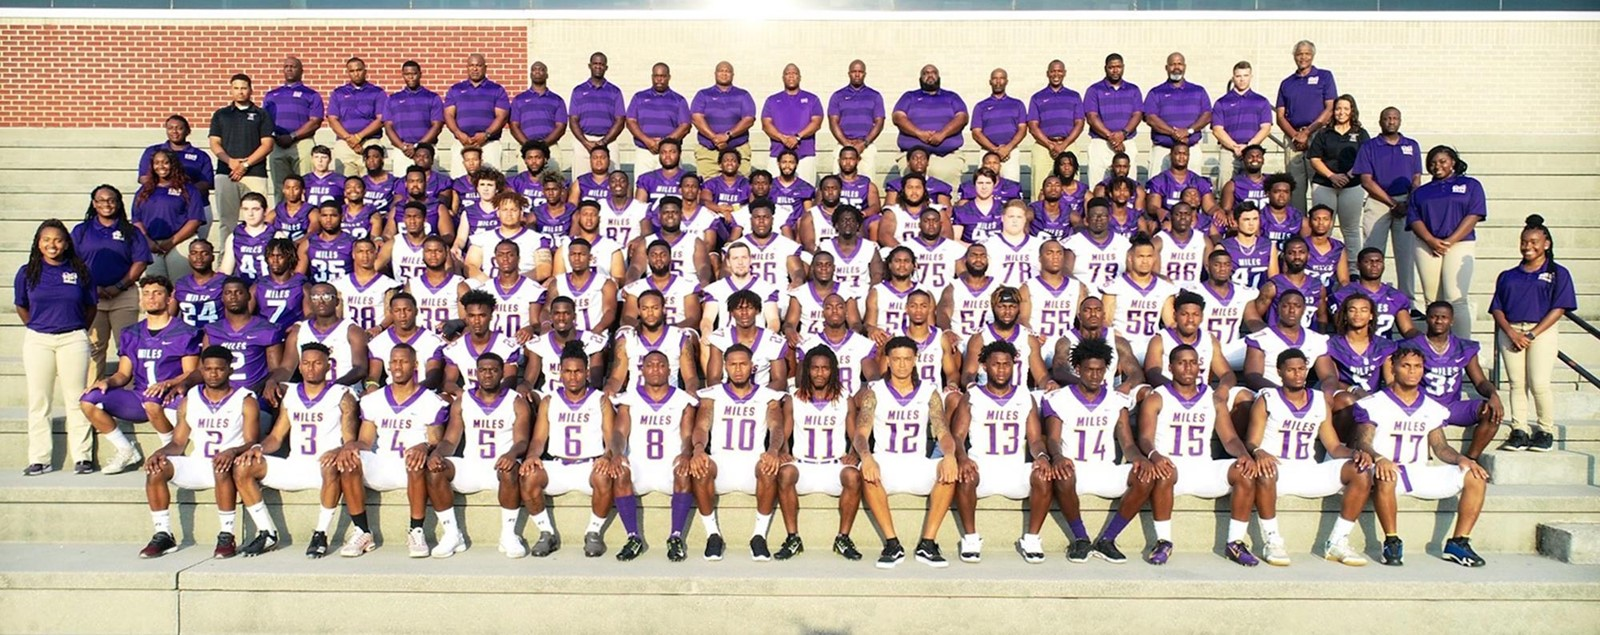 2018 Football Roster Miles College Athletics